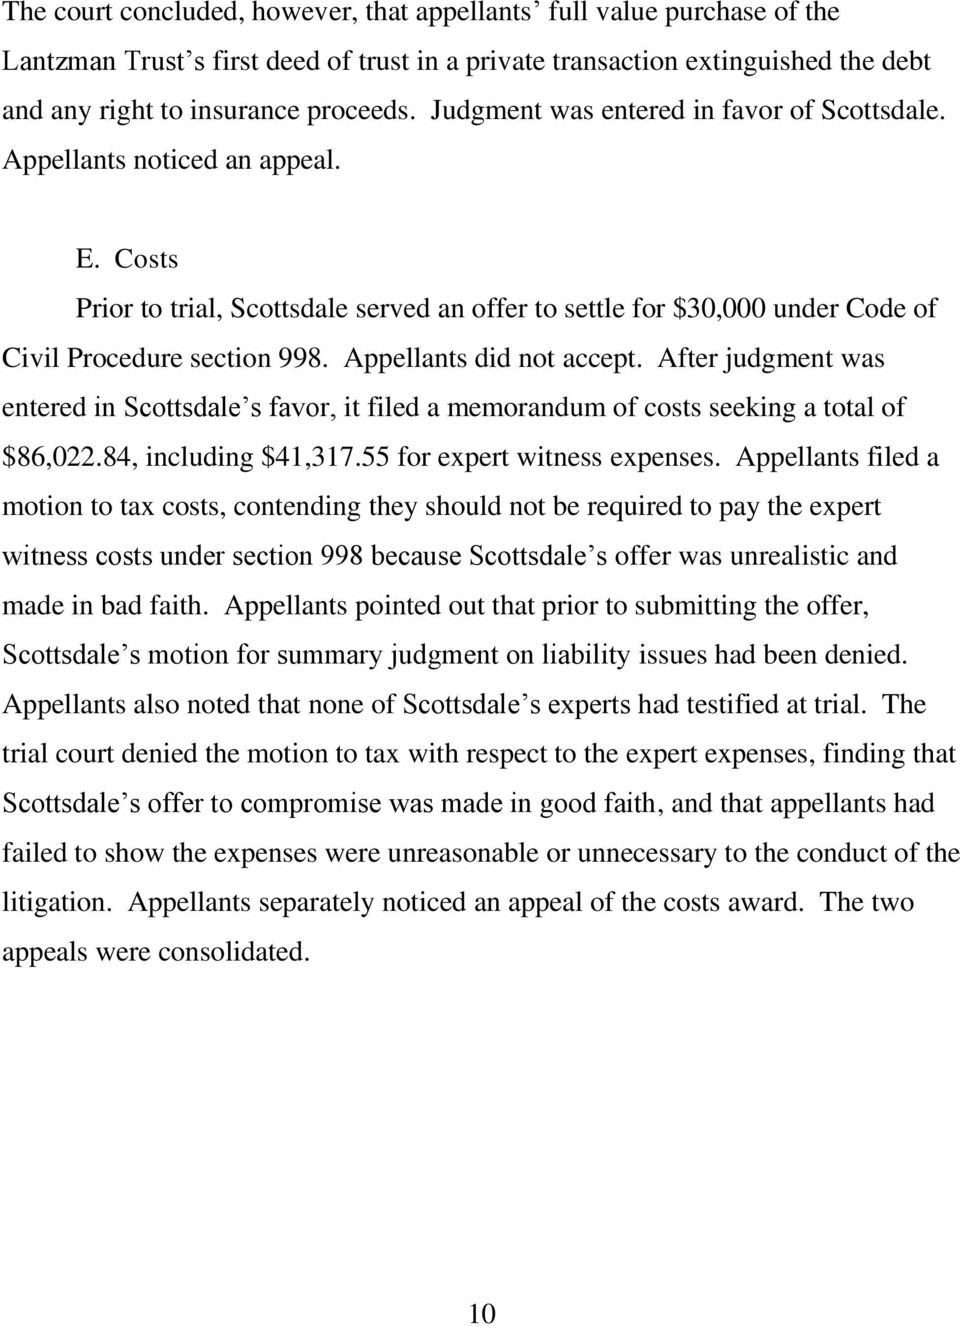 Appellants did not accept. After judgment was entered in Scottsdale s favor, it filed a memorandum of costs seeking a total of $86,022.84, including $41,317.55 for expert witness expenses.